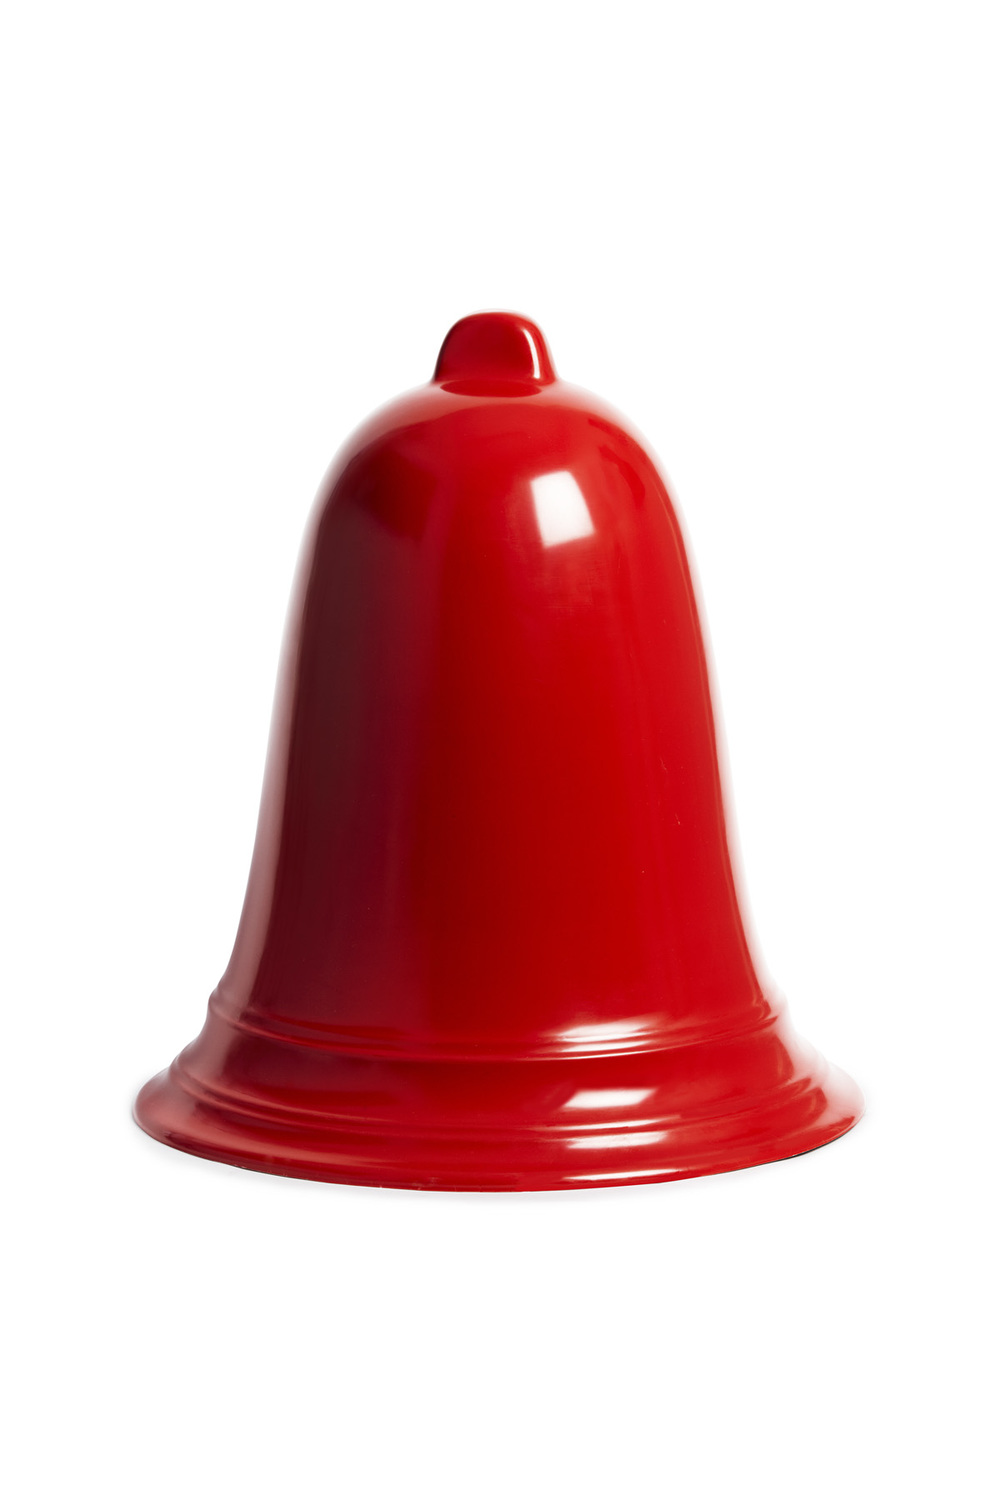 Large red bell